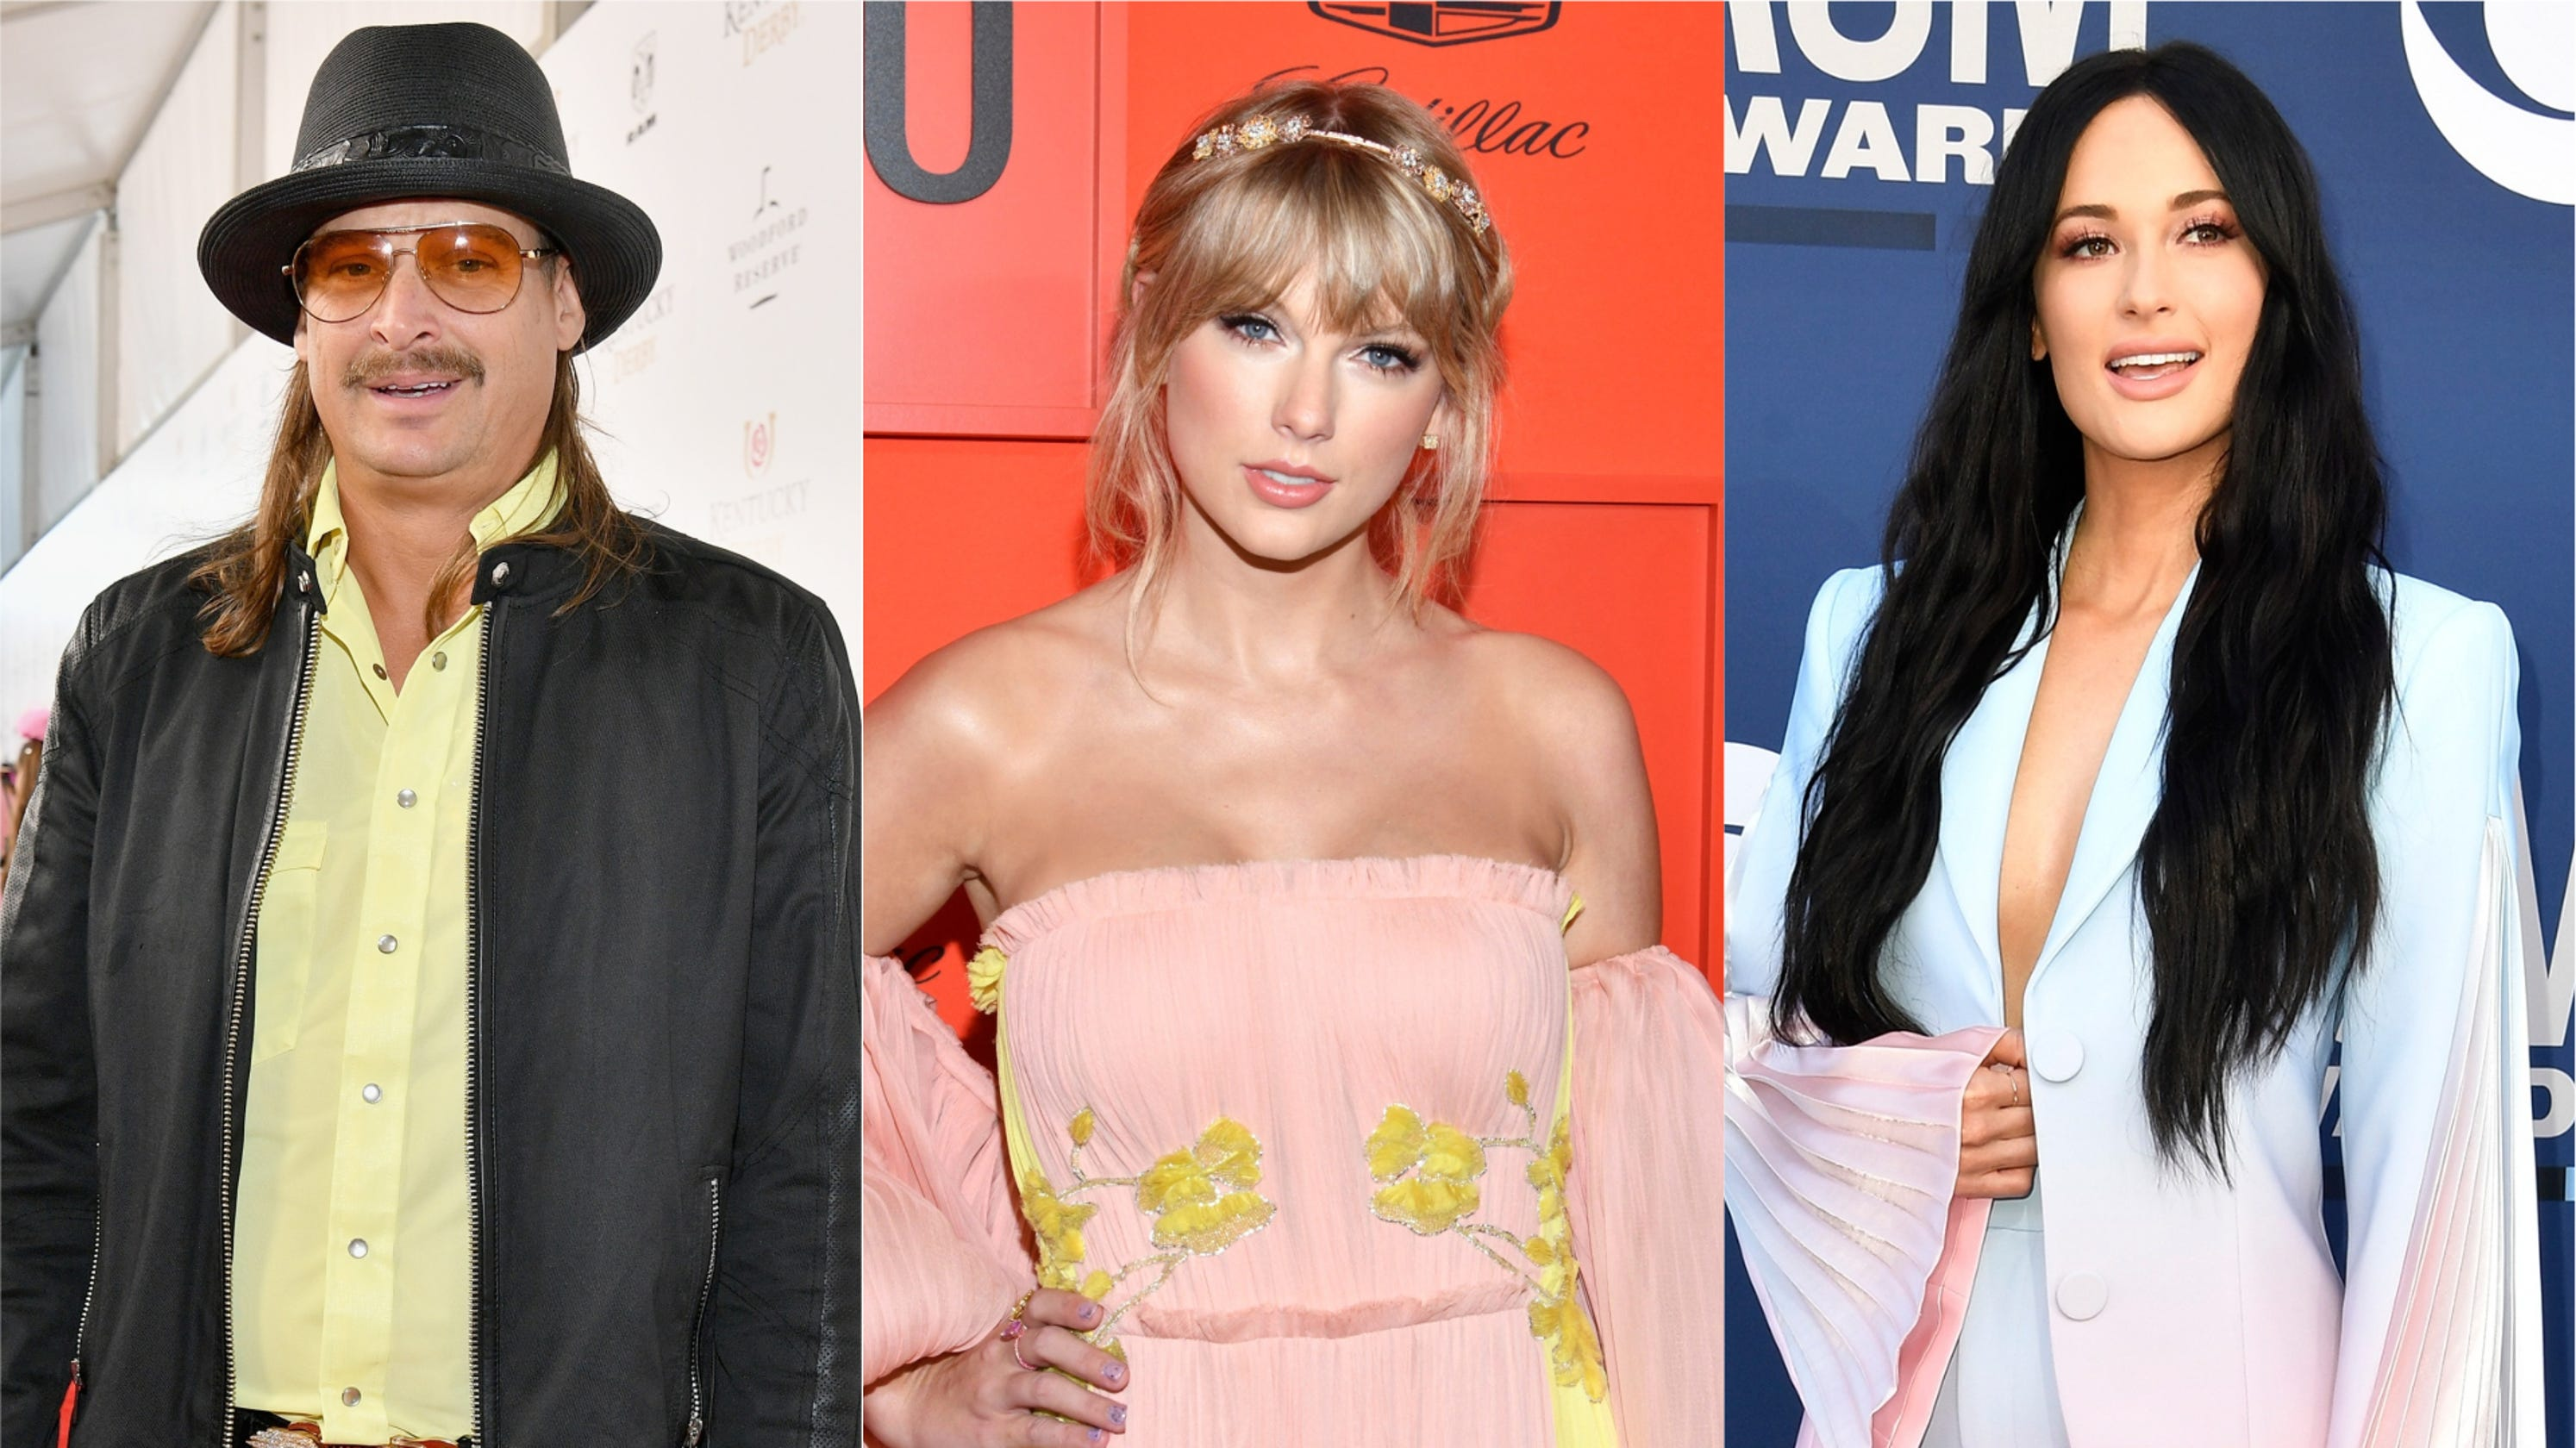 Taylor Swift, Kid Rock tweet flap: Kacey Musgraves clarifies support